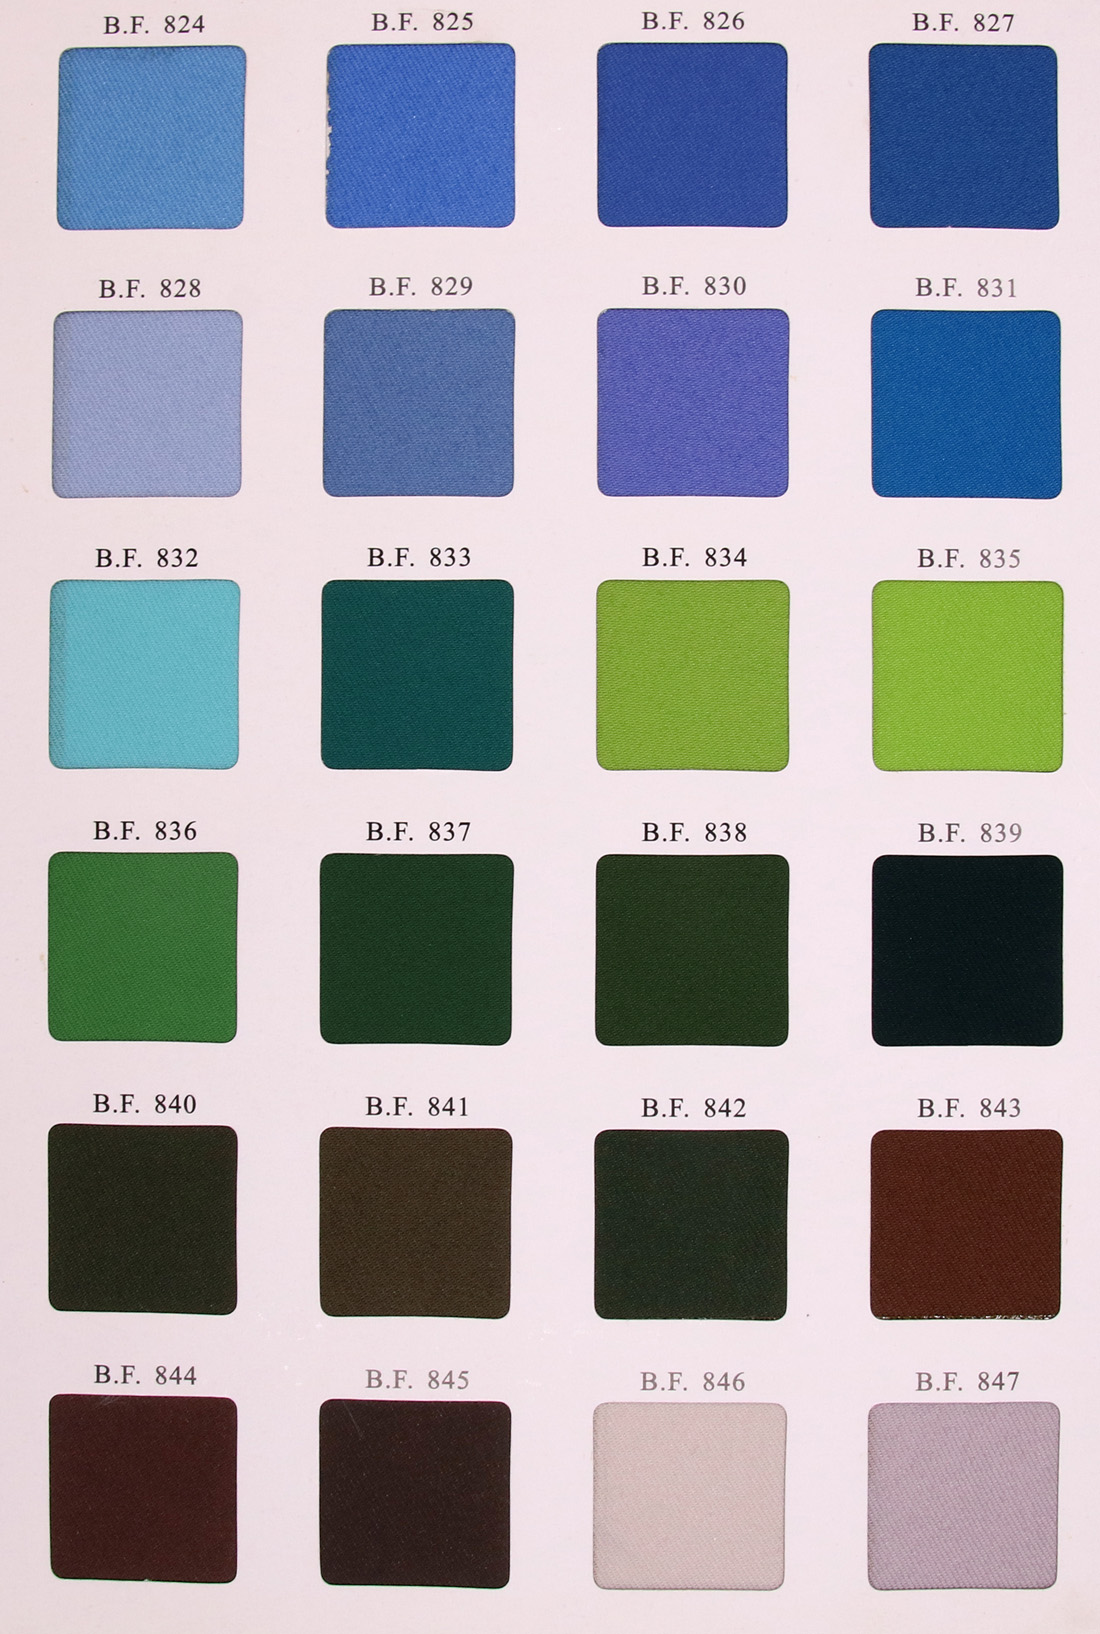 Cloth color swatches